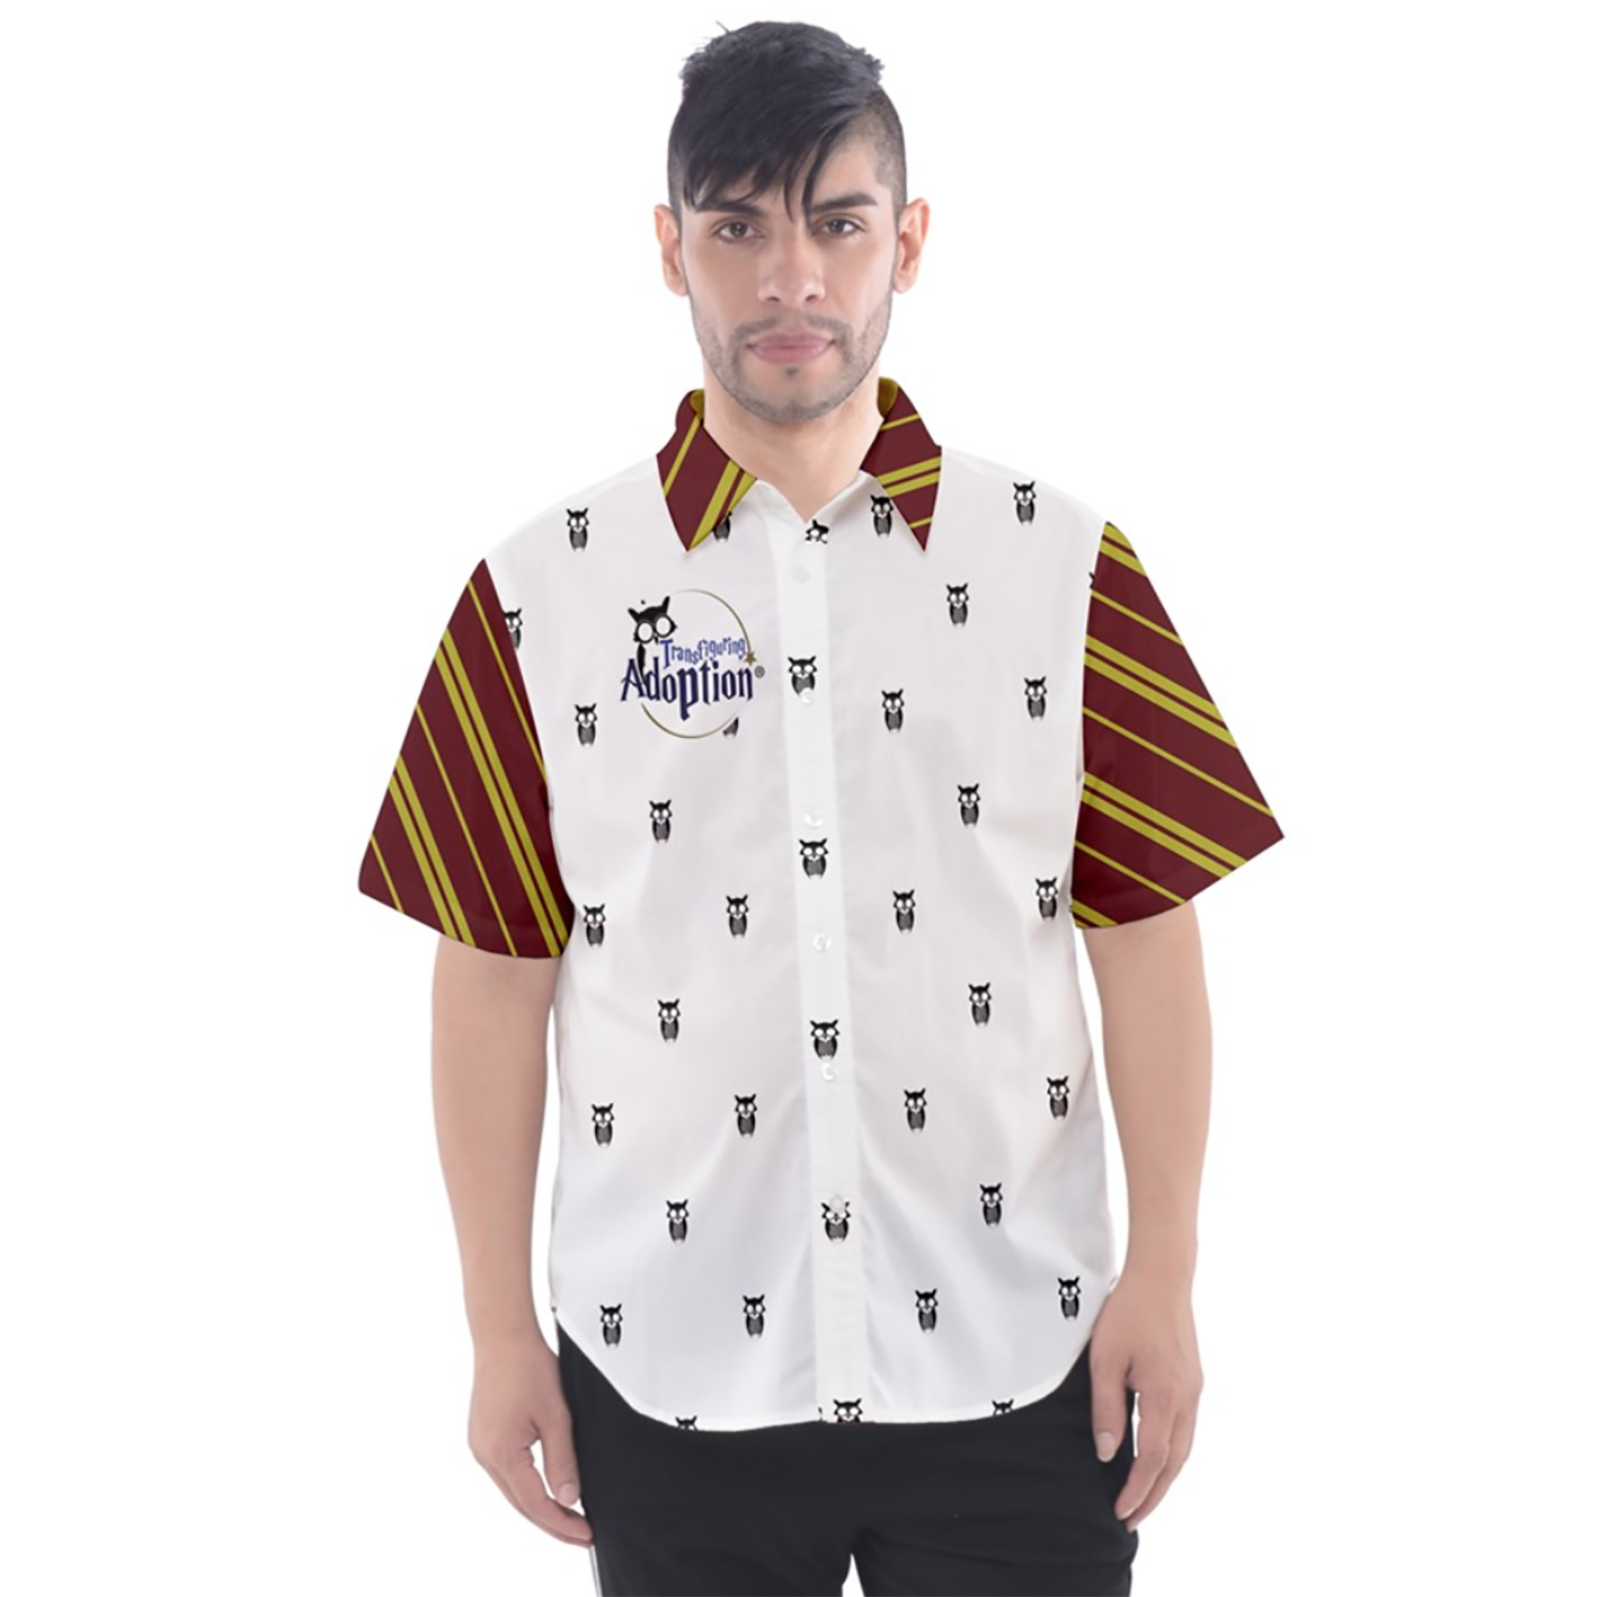 Red & Gold Owl Patterned Button Up Short Sleeve Shirt - Inspired by Gryffindor House